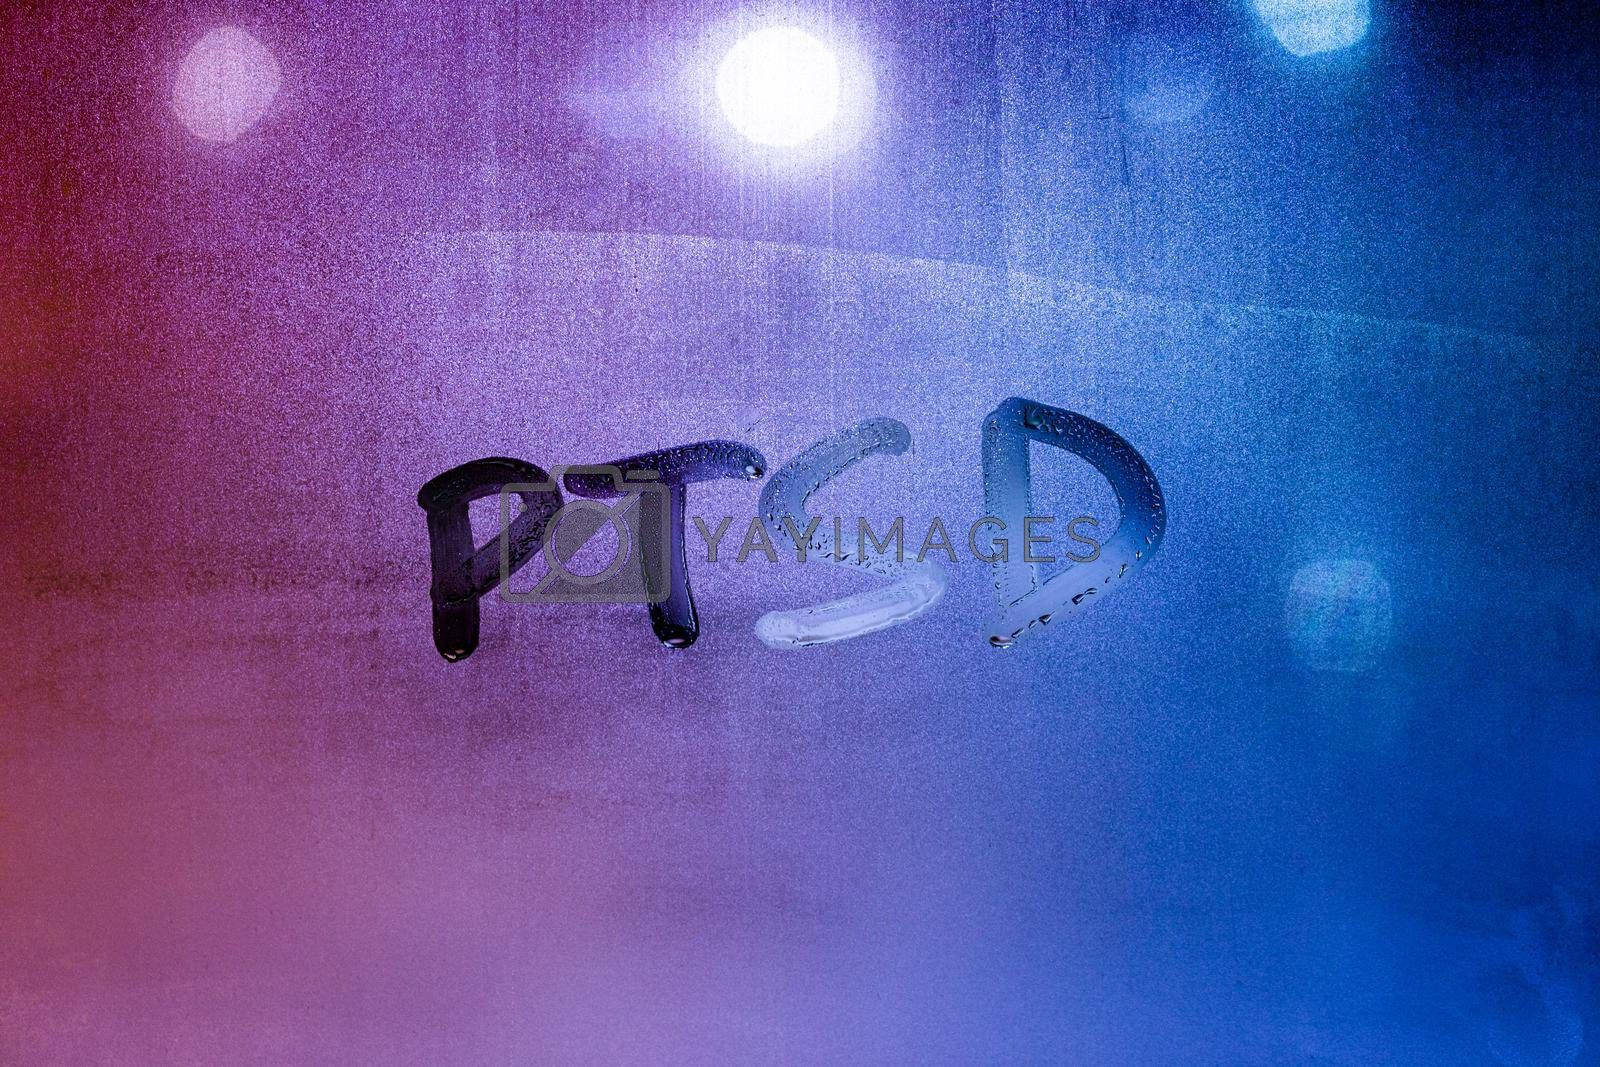 abbreviation ptsd - post traumatic stress disorder - handwritten on night wet window glass, close-up with selective focus